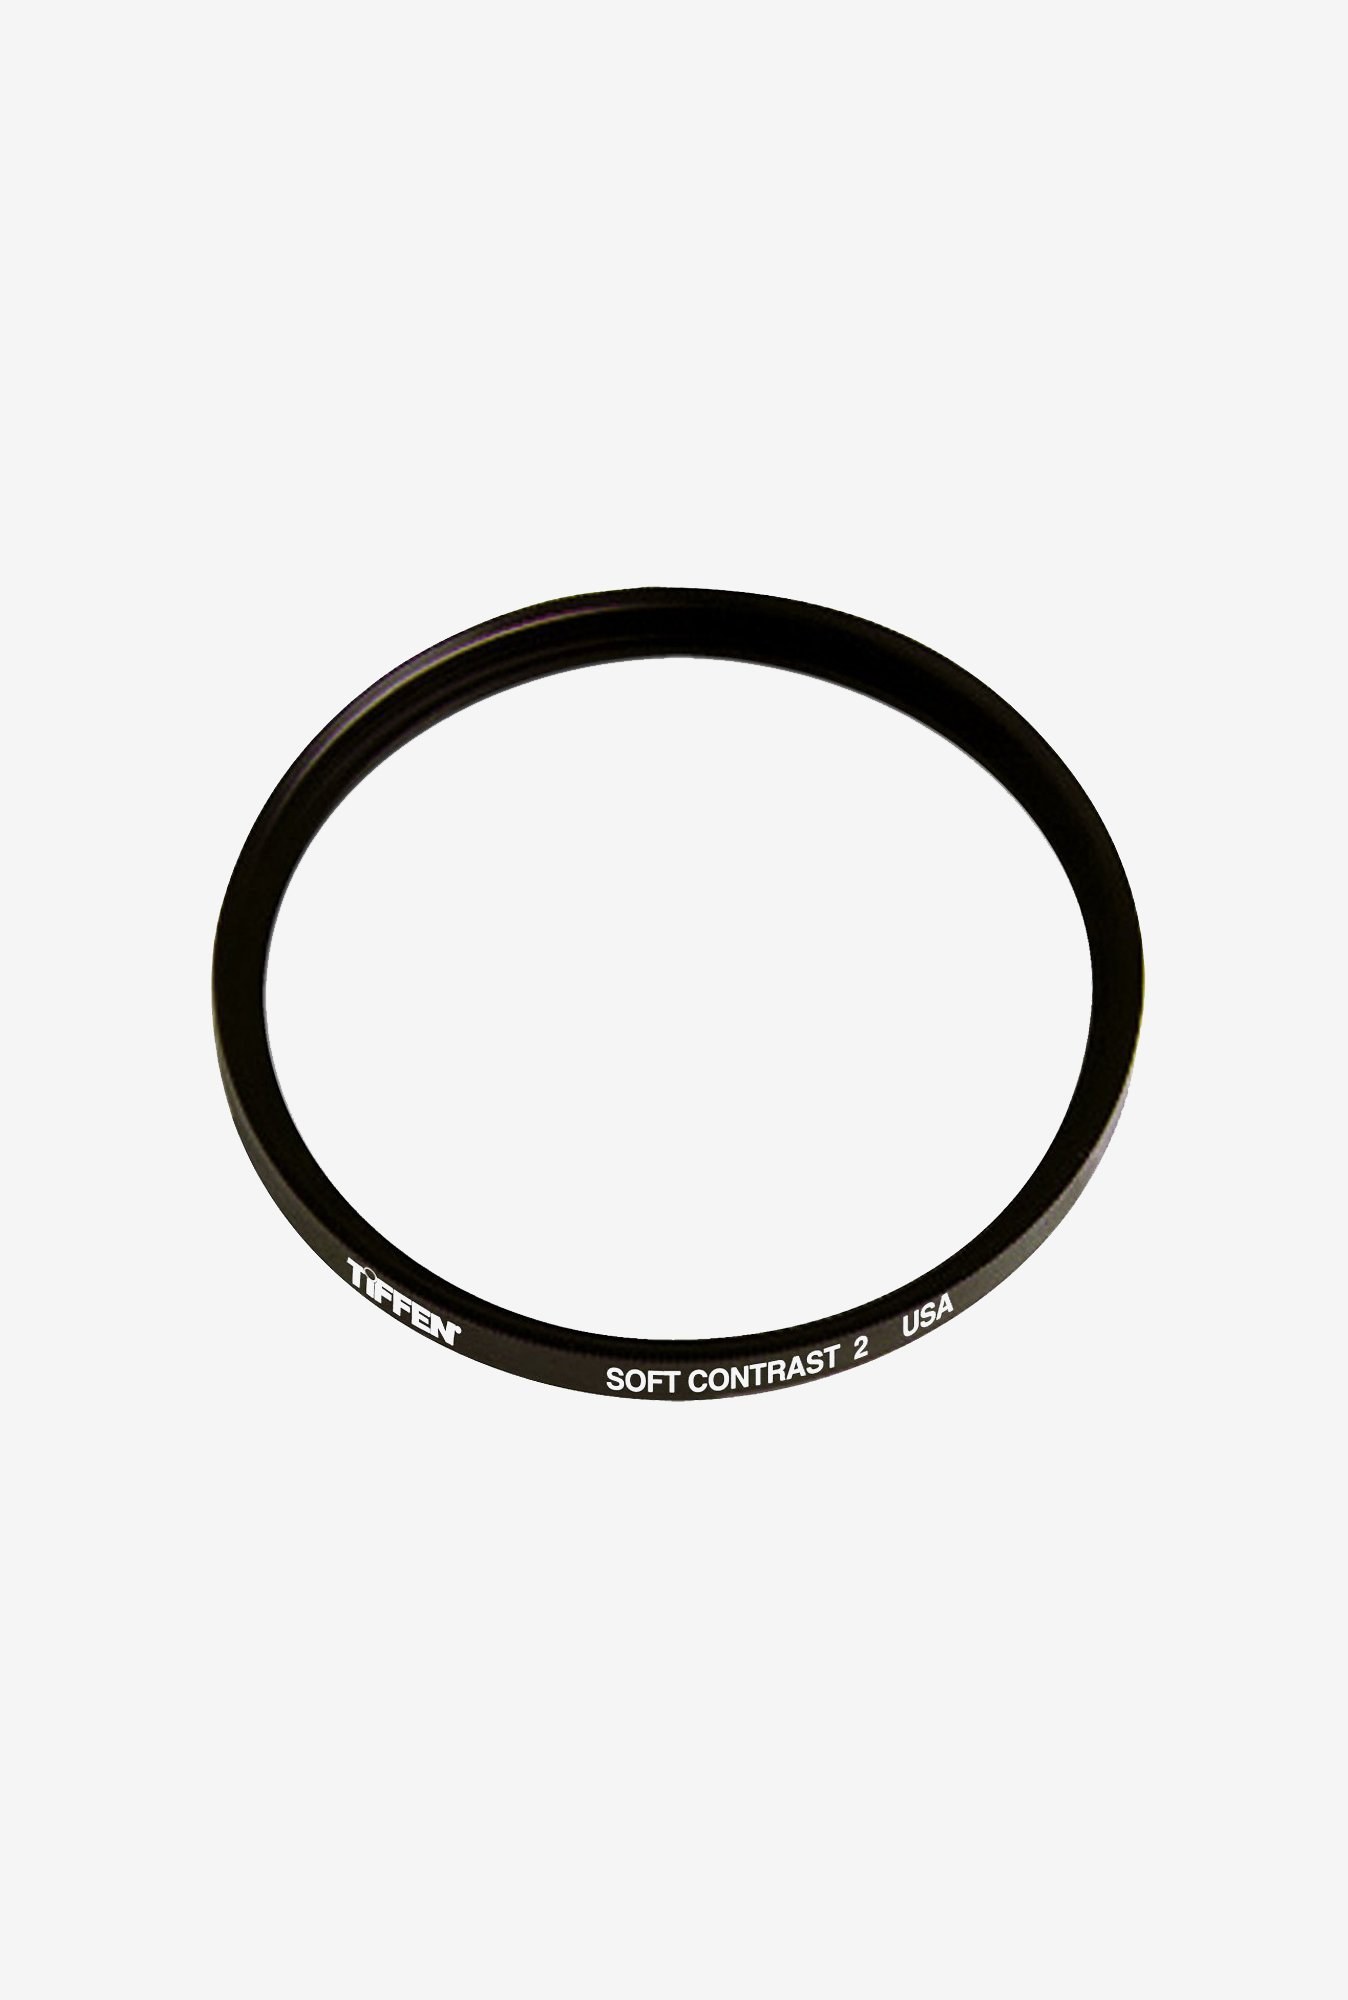 Tiffen 52SC2 52mm Soft Contrast 2 Filter (Black)